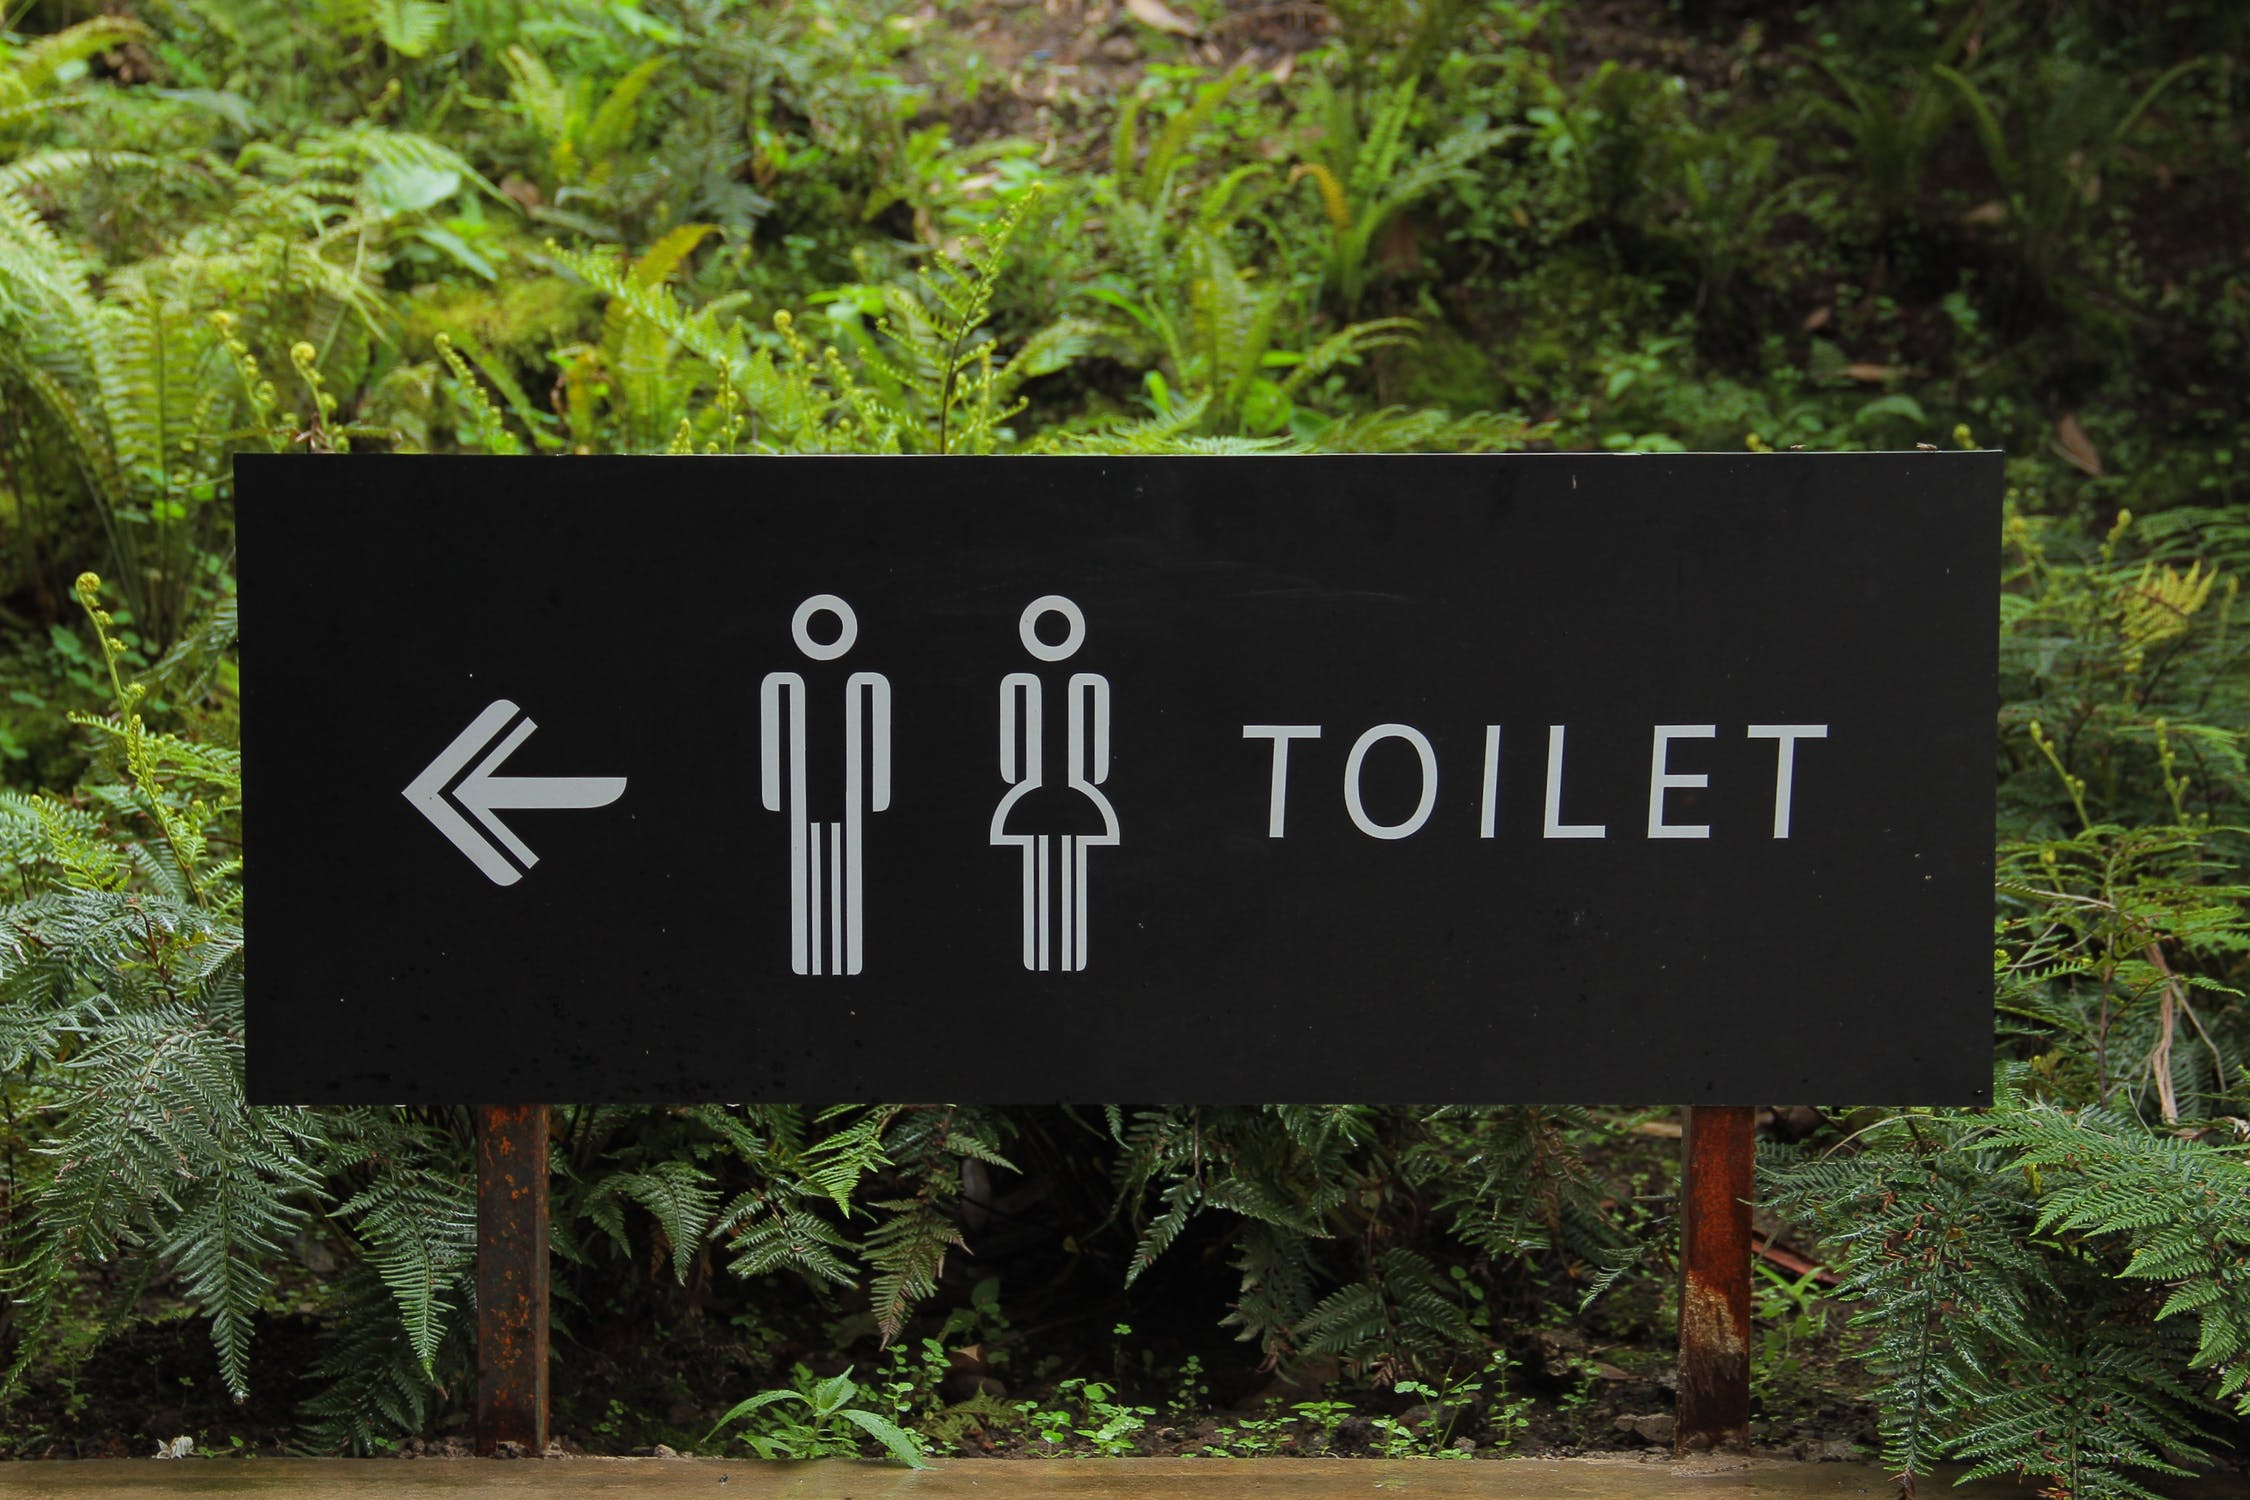 How to fix common toilet problems and keep costs down